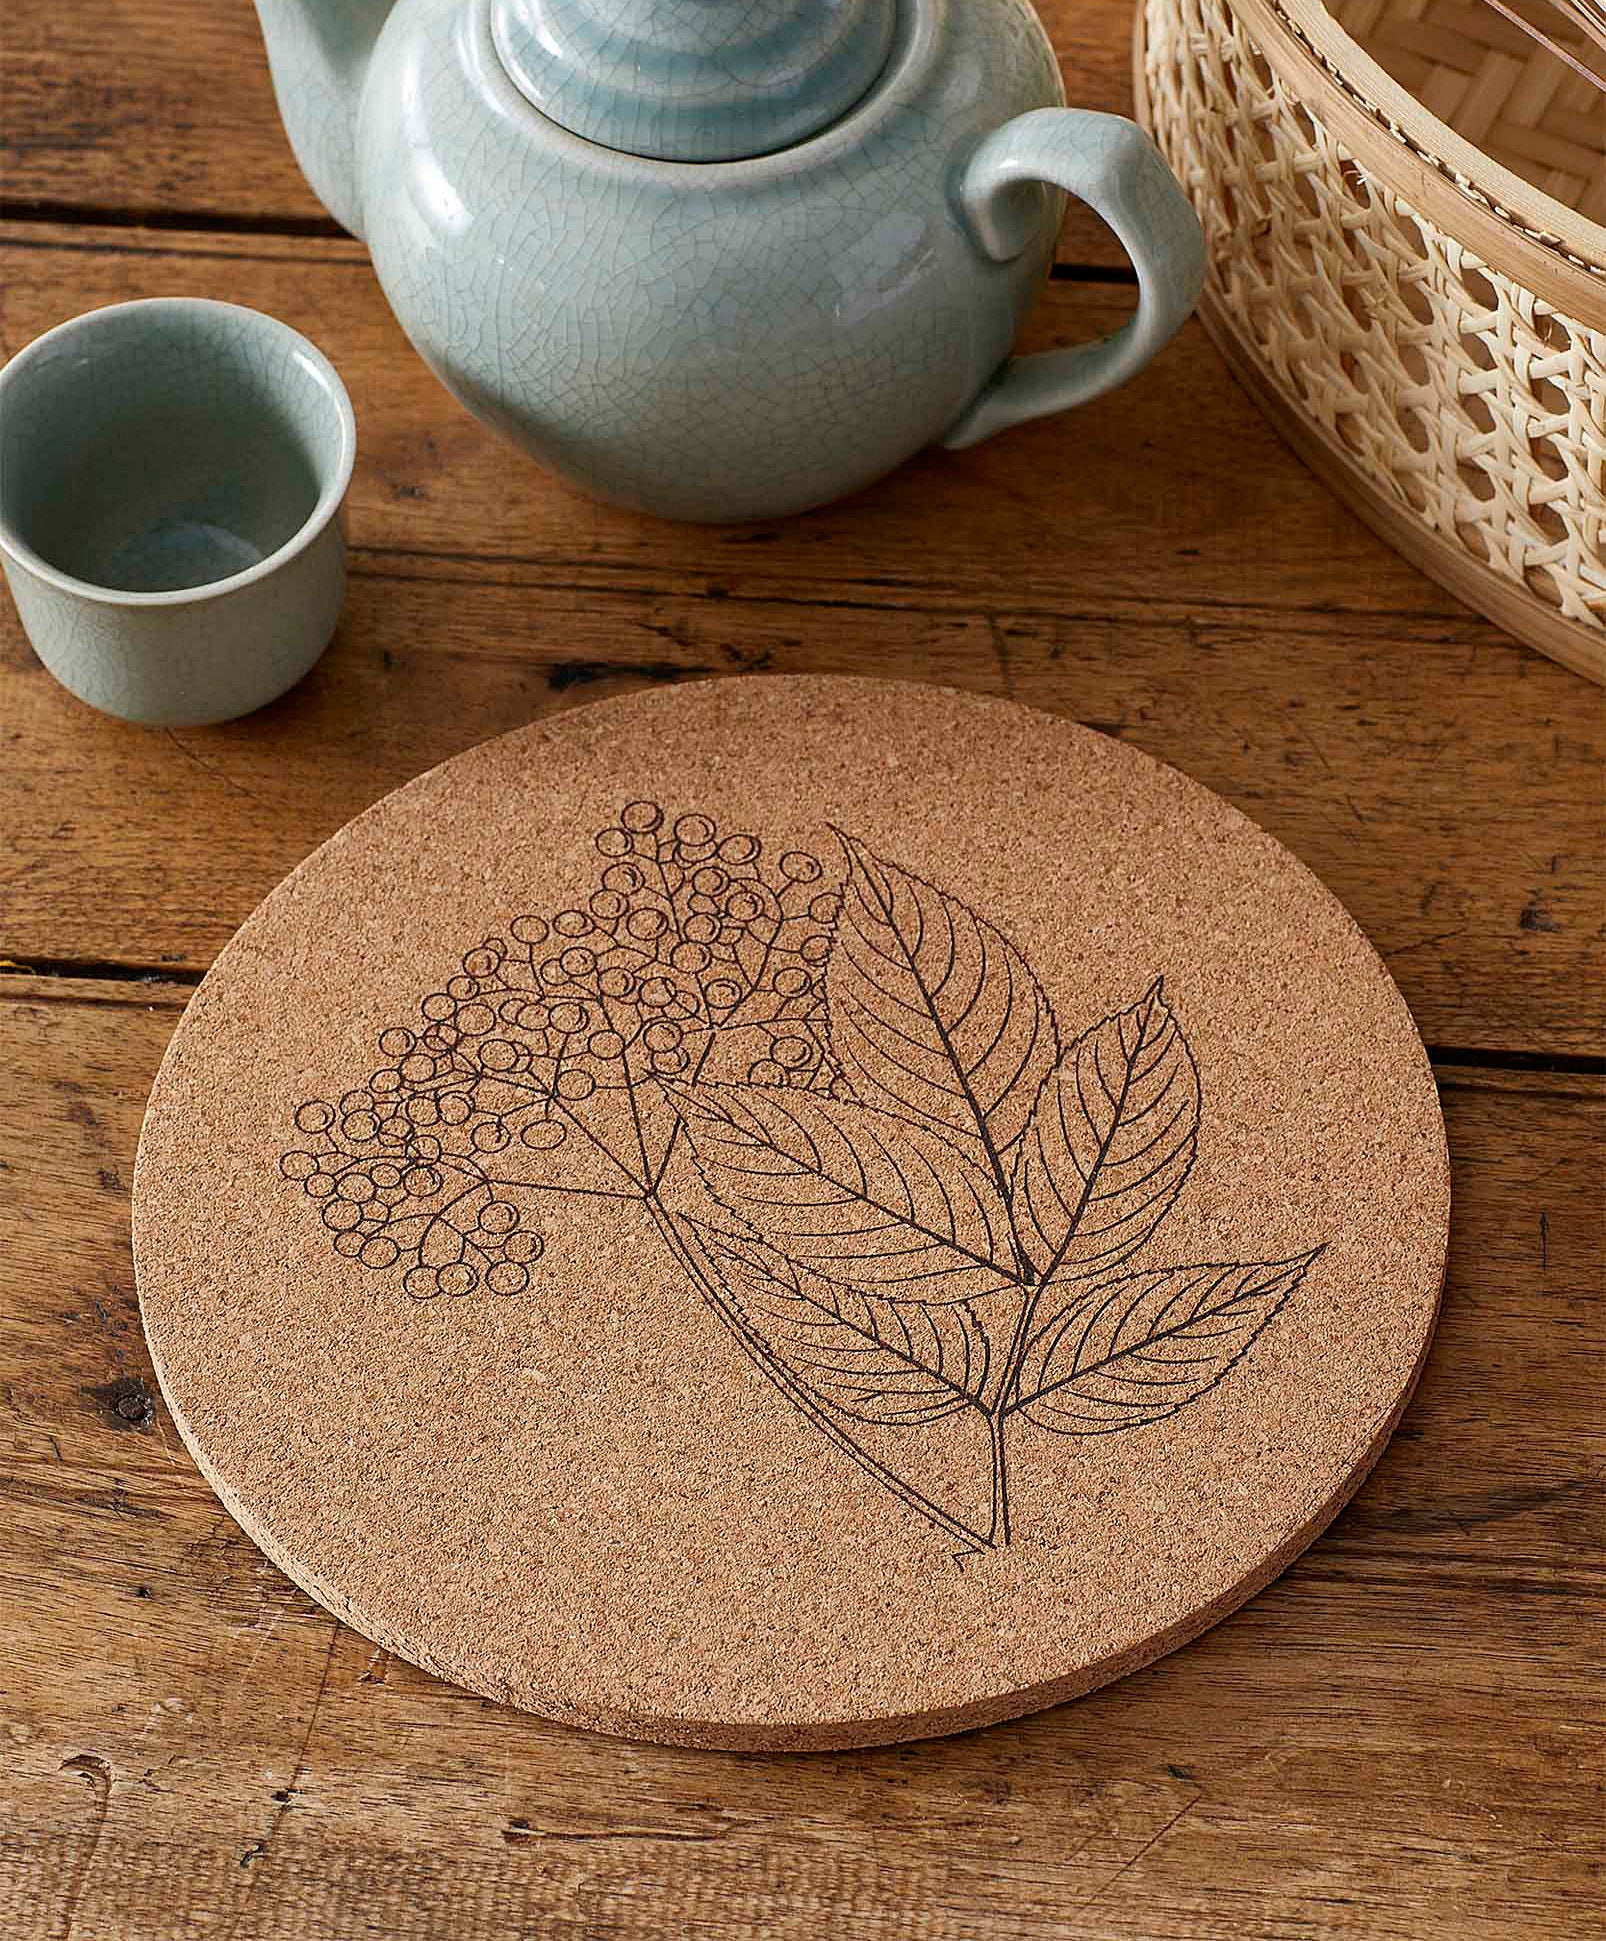 The cork trivet with a floral design on it next to a teapot and a cup